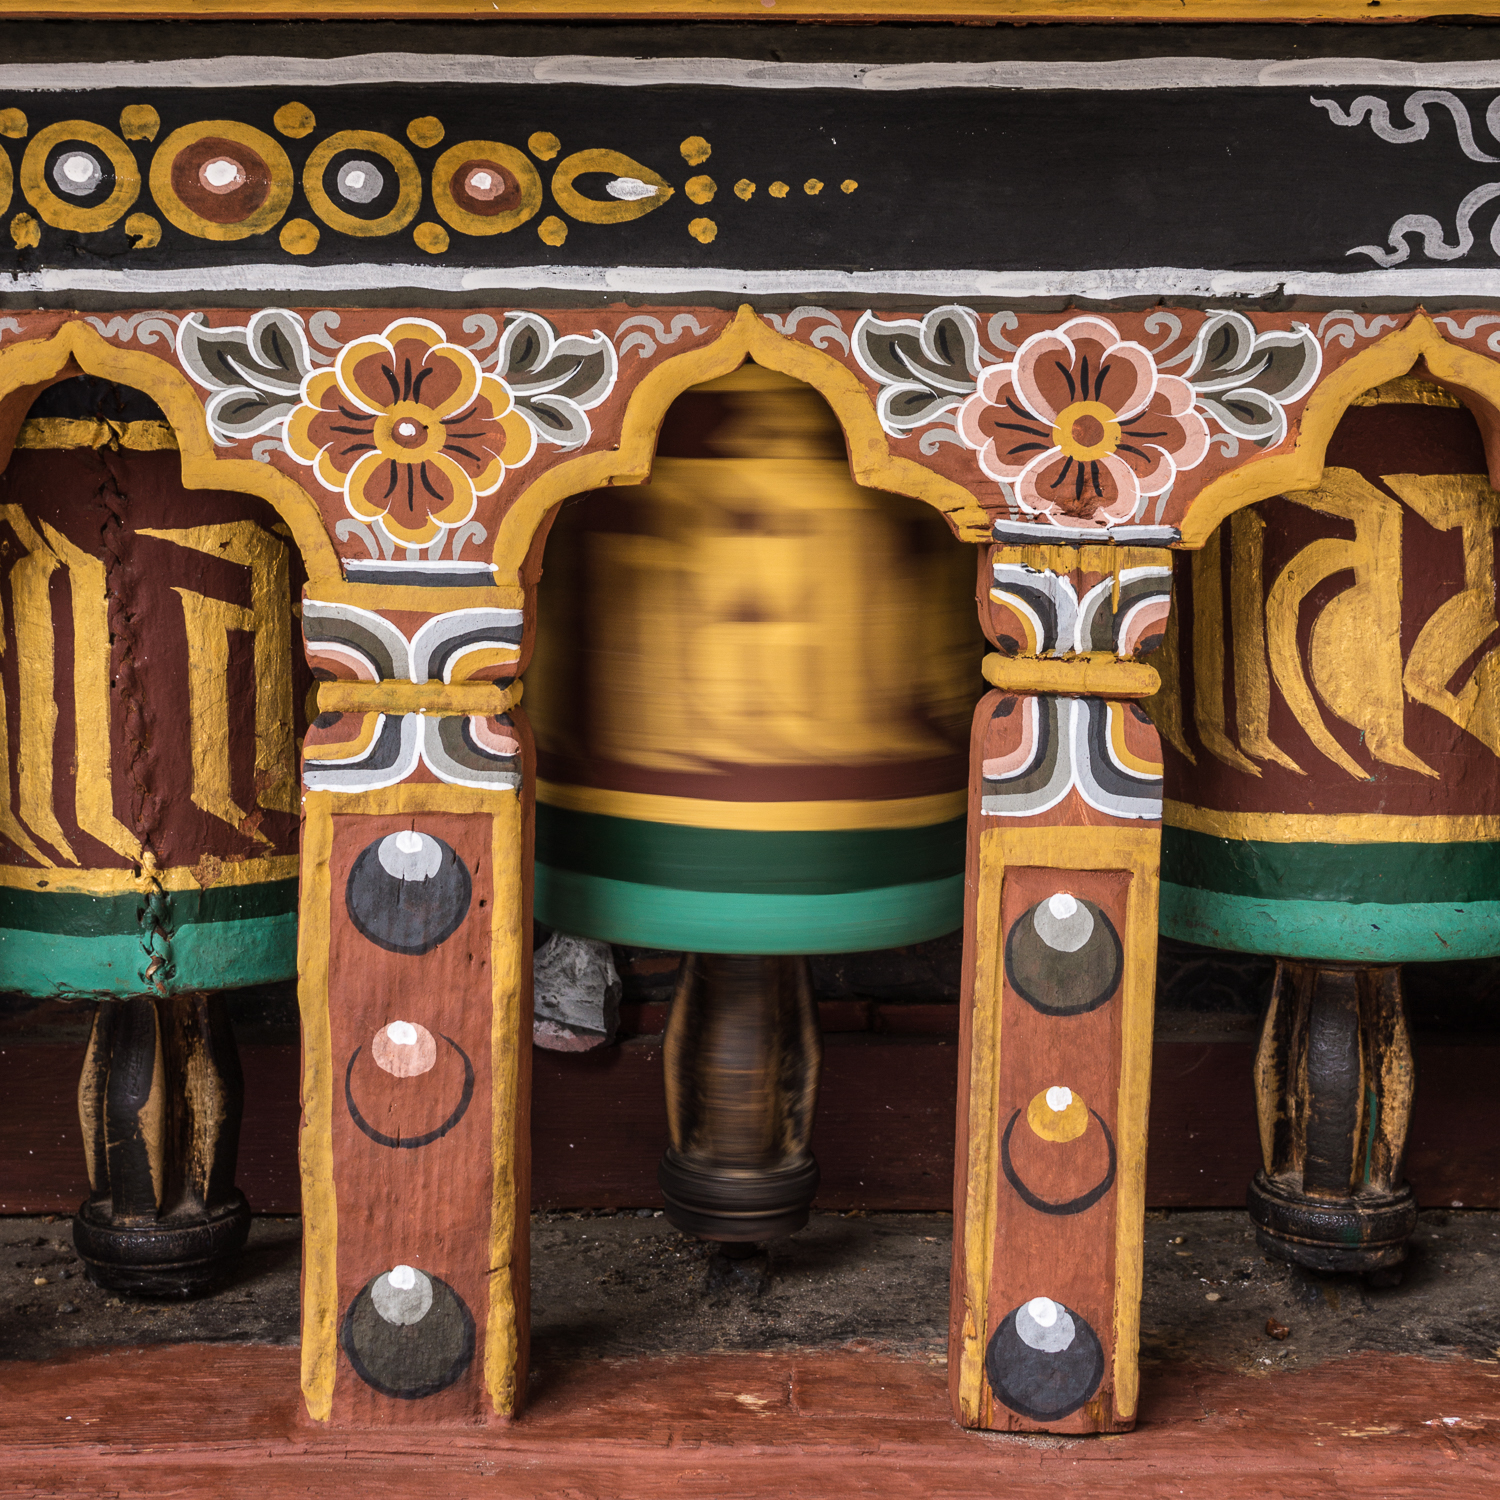 spinning-prayer-wheel.jpg